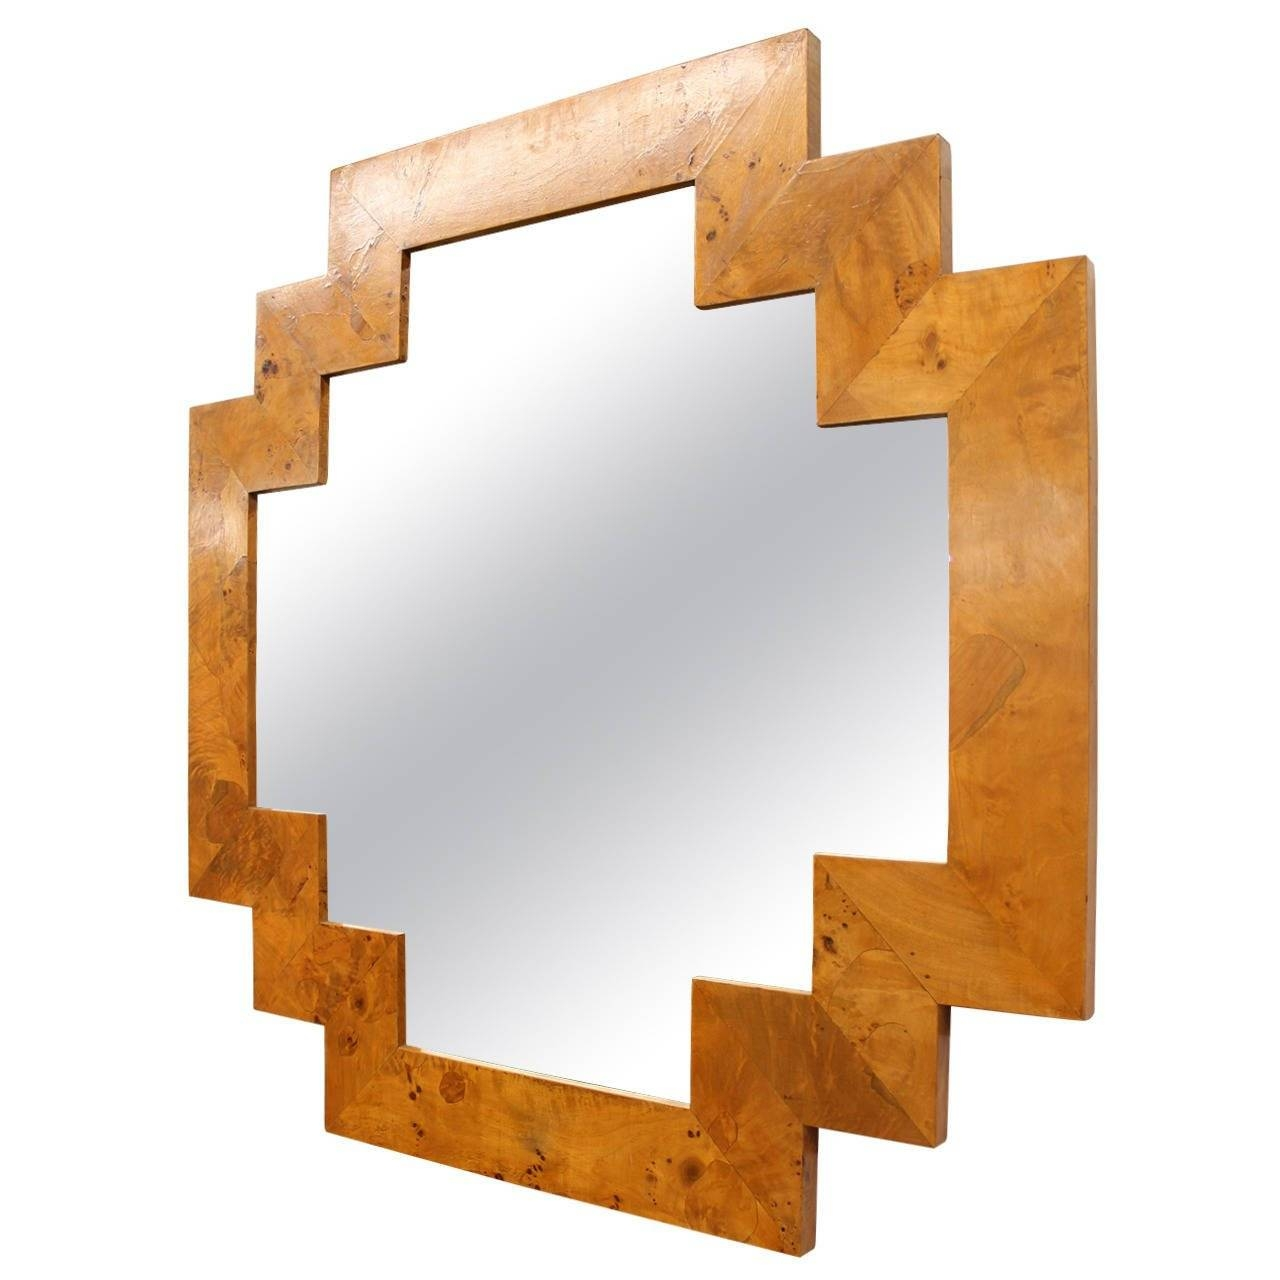 Art Deco Style Geometric Italian Burl Wood Wall Mirror At 1Stdibs regarding Art Deco Style Mirrors (Image 6 of 25)